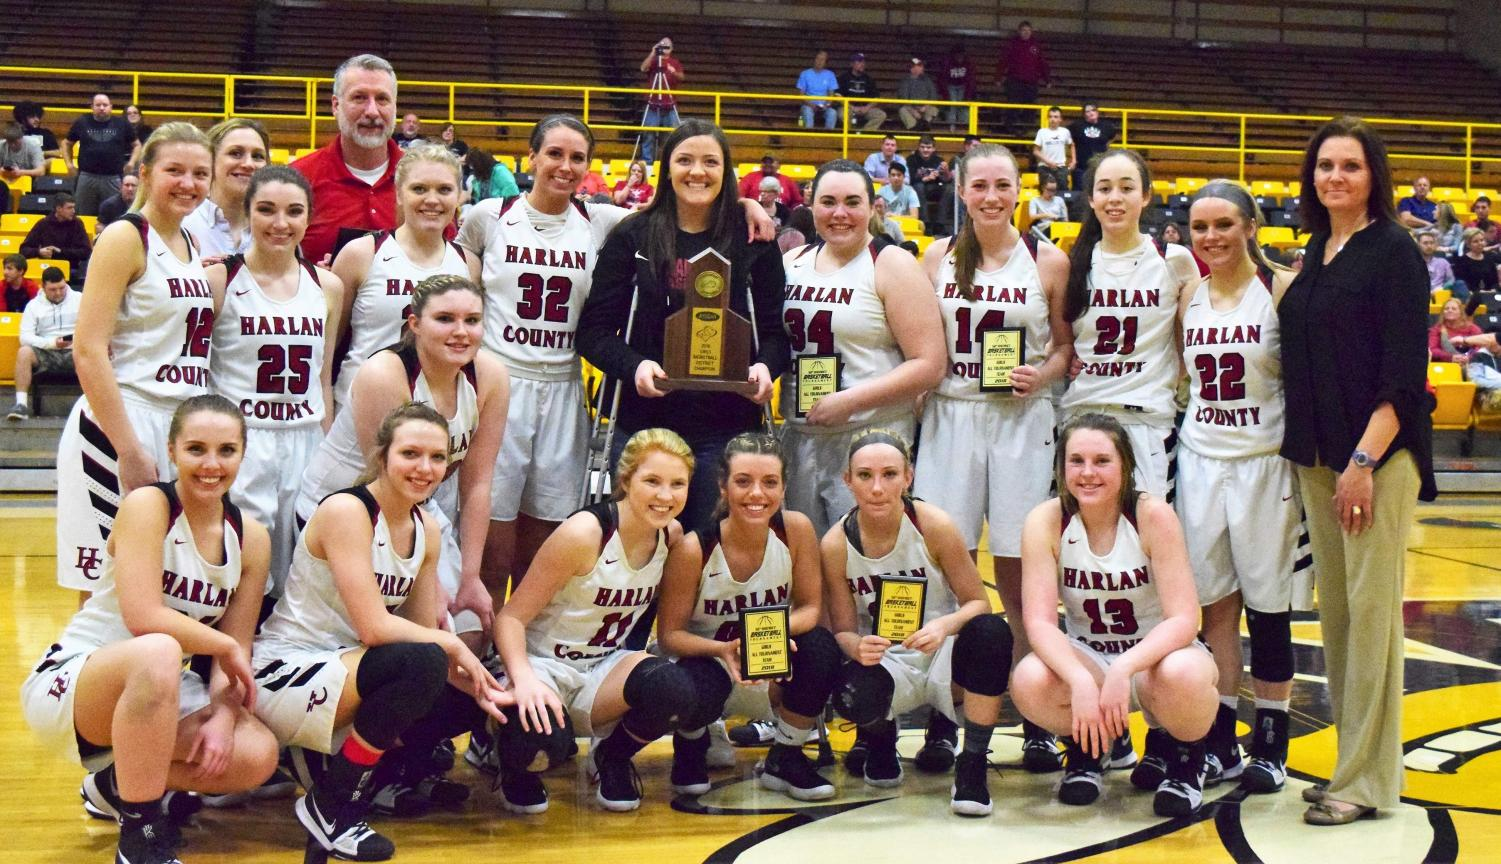 The Harlan County Lady Bears are pictured with their championship trophy after defeating Harlan in the 52nd District Tournament finals.